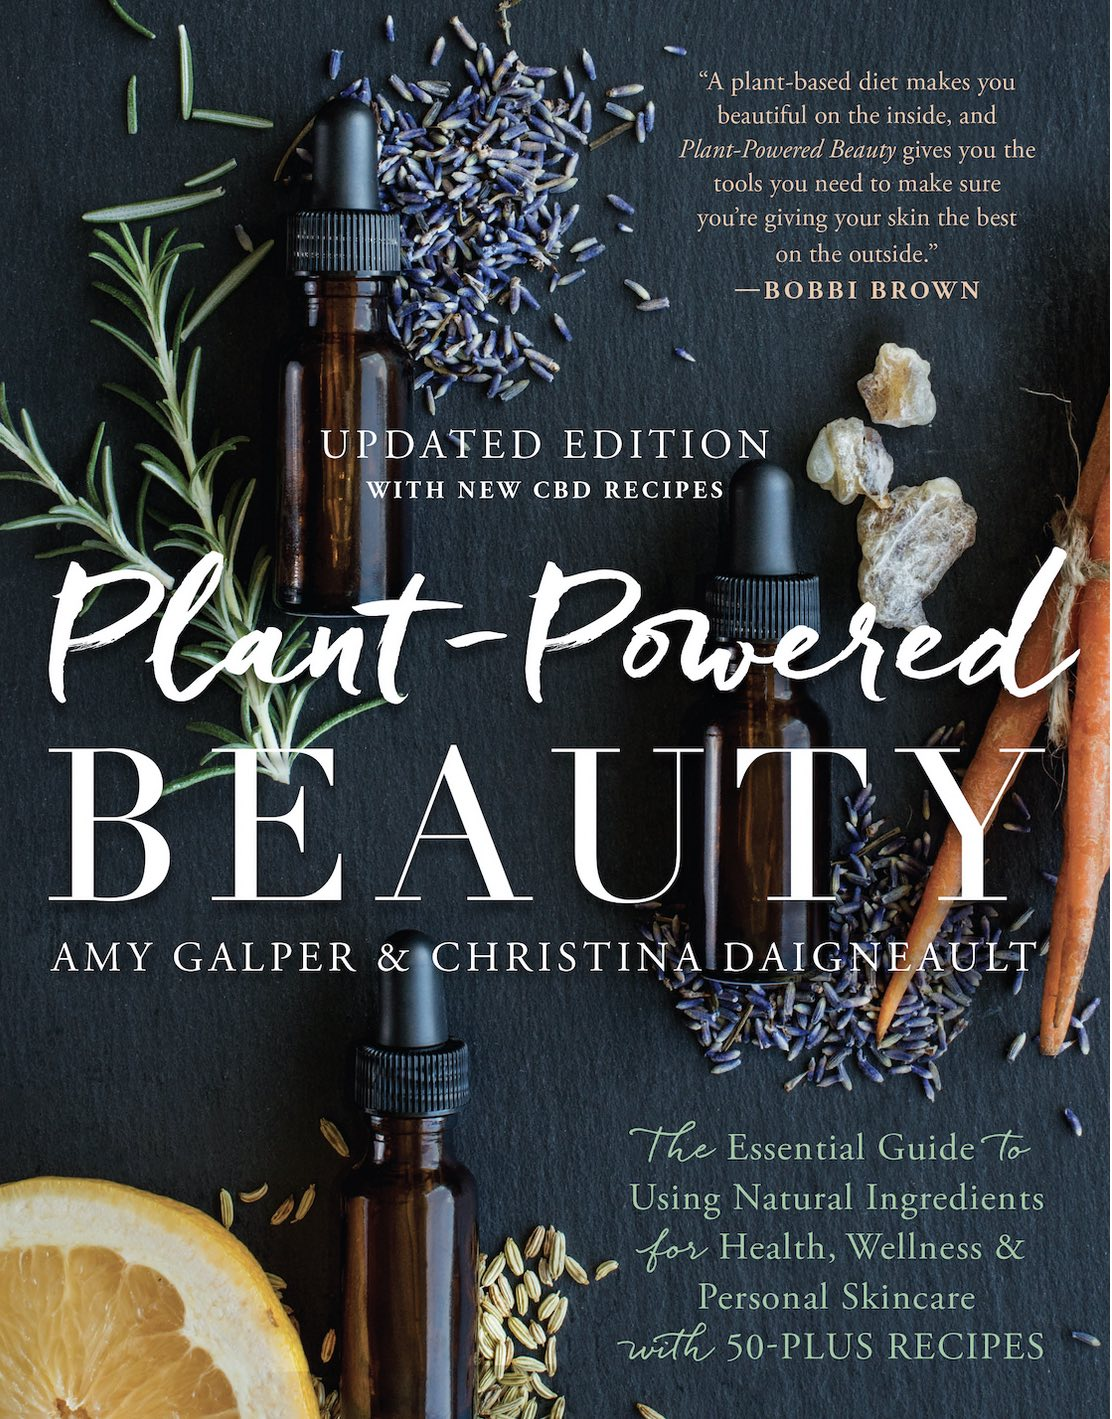 New Book Edition with CBD Beauty Recipes